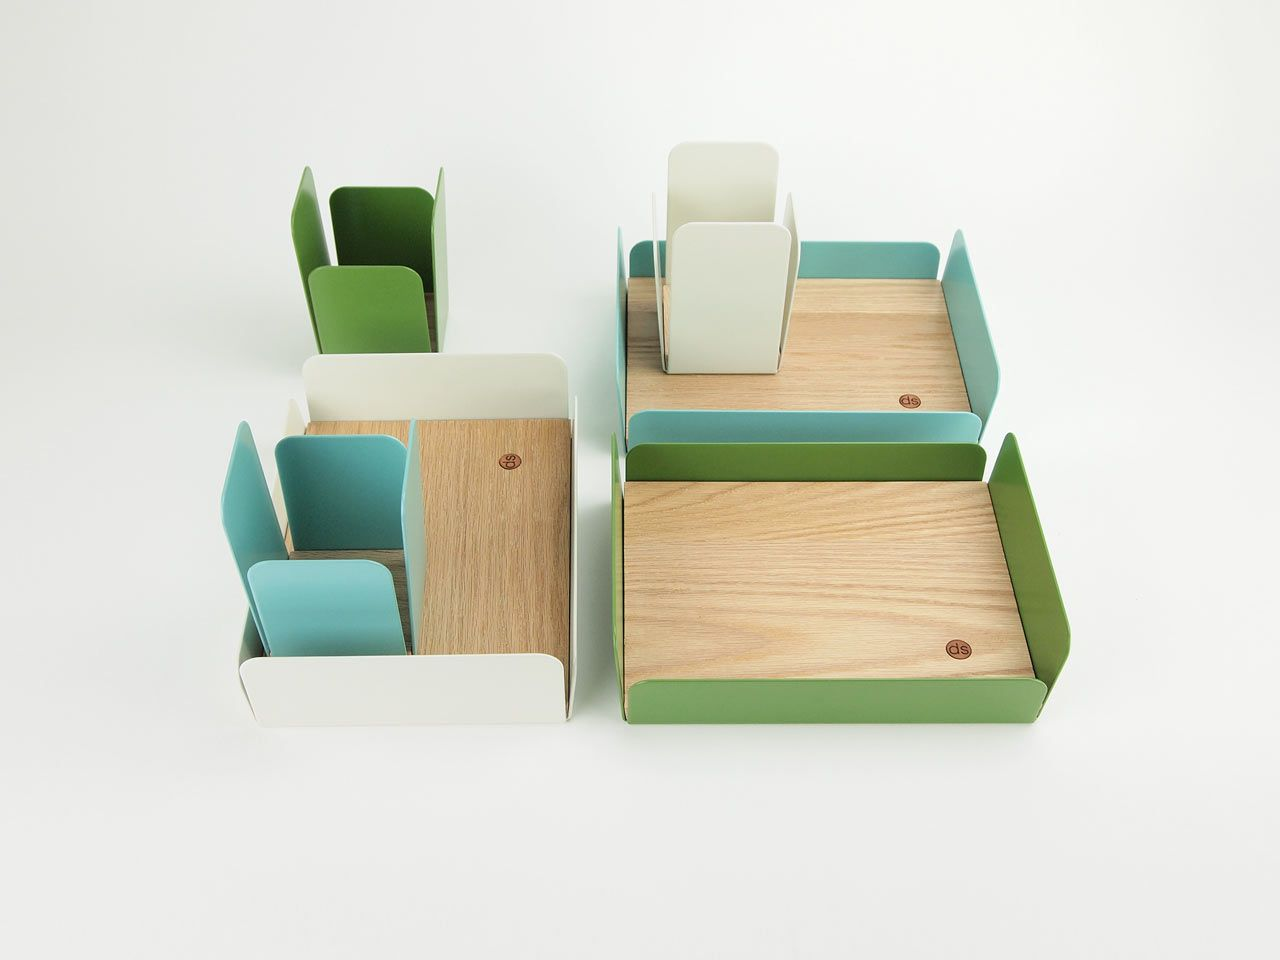 Cool Desk Sets Petals Desk Accessories By Dino Sanchez Home